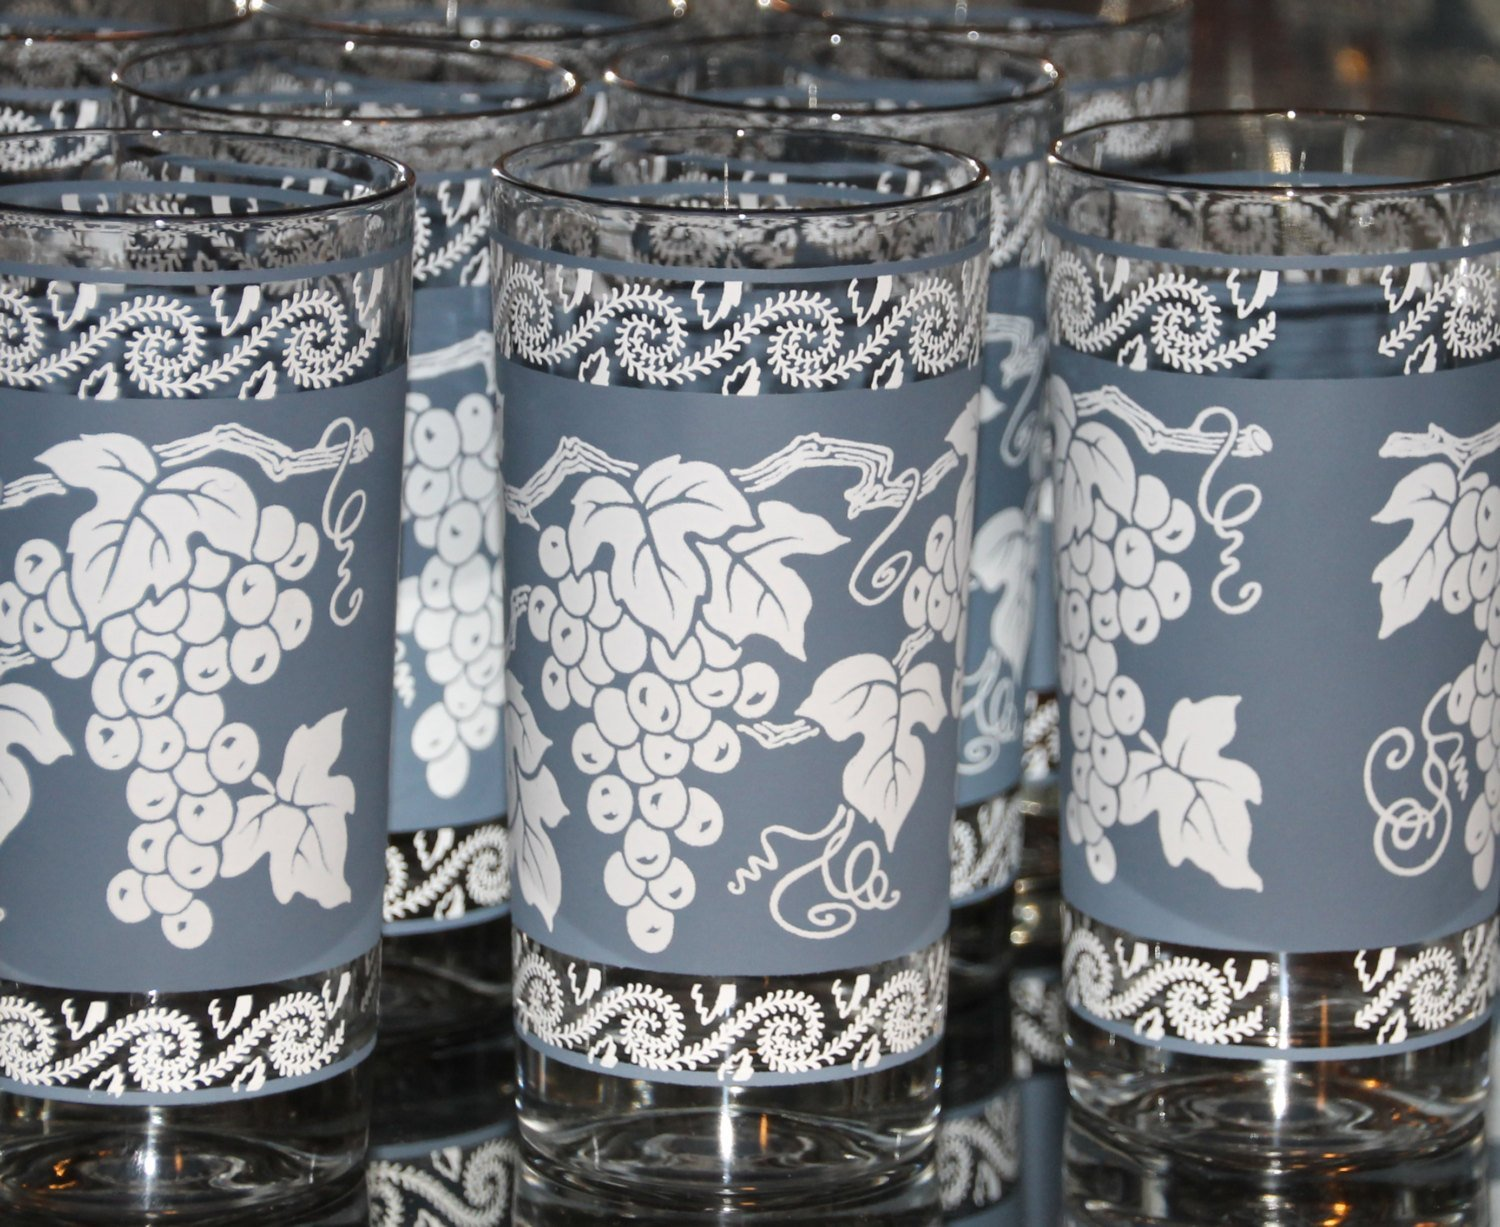 Vintage Glassware Of Tall Tumbler Glasses 1960s Anchor Hocking Blue A